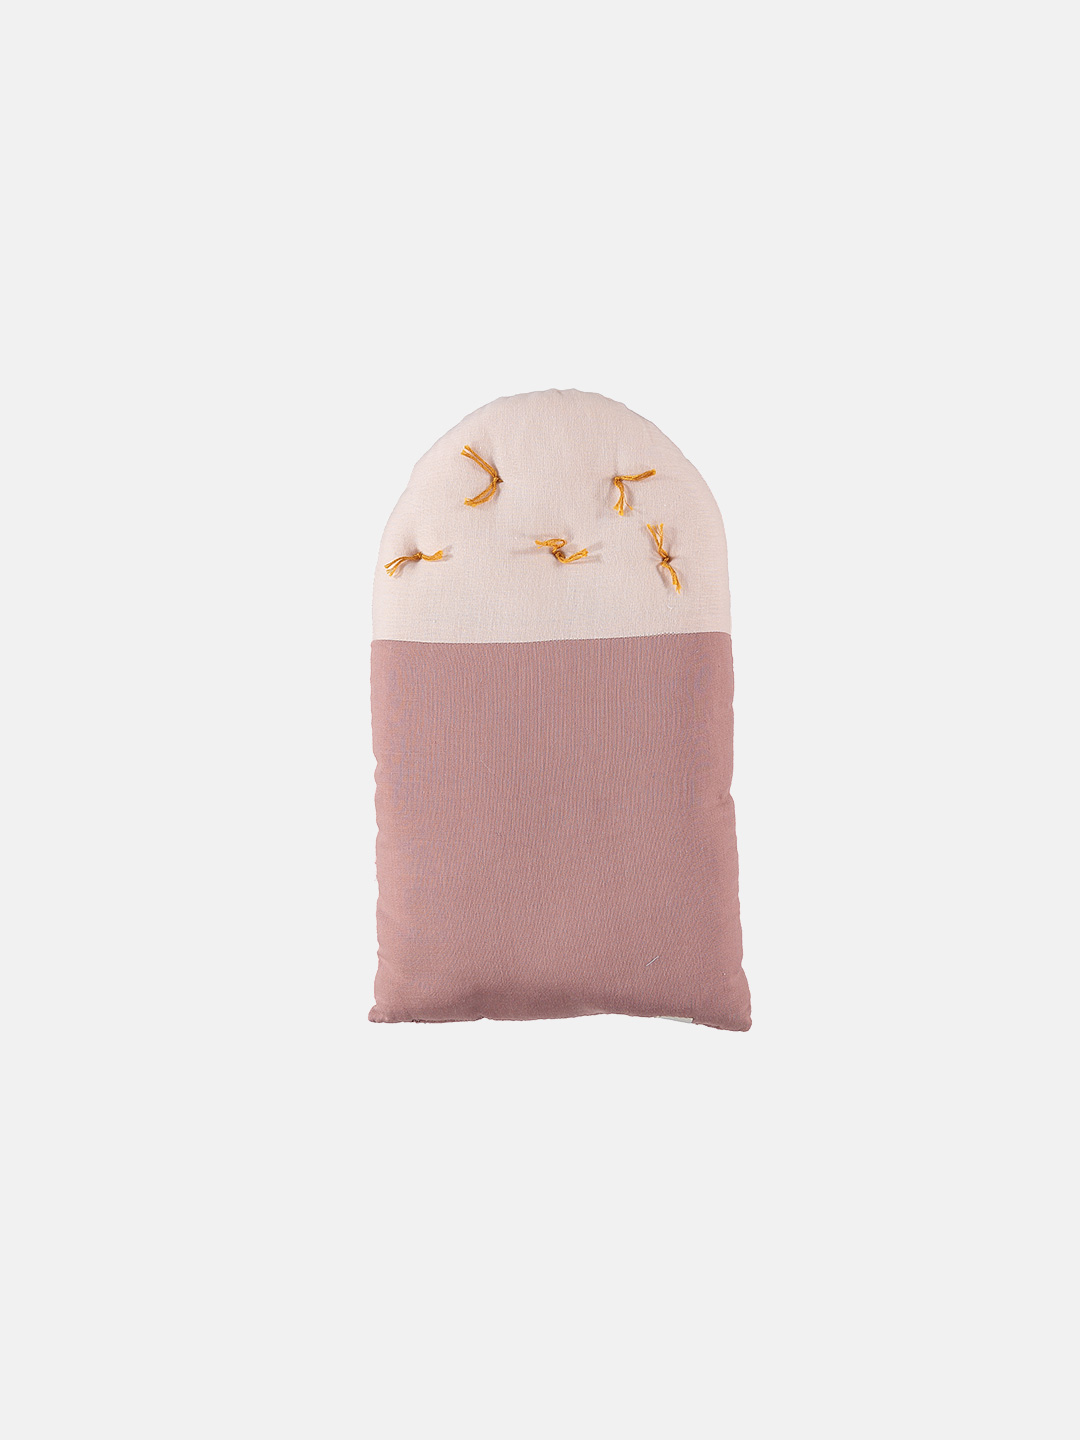 Small House Cushion - Blush & Pearl Pink